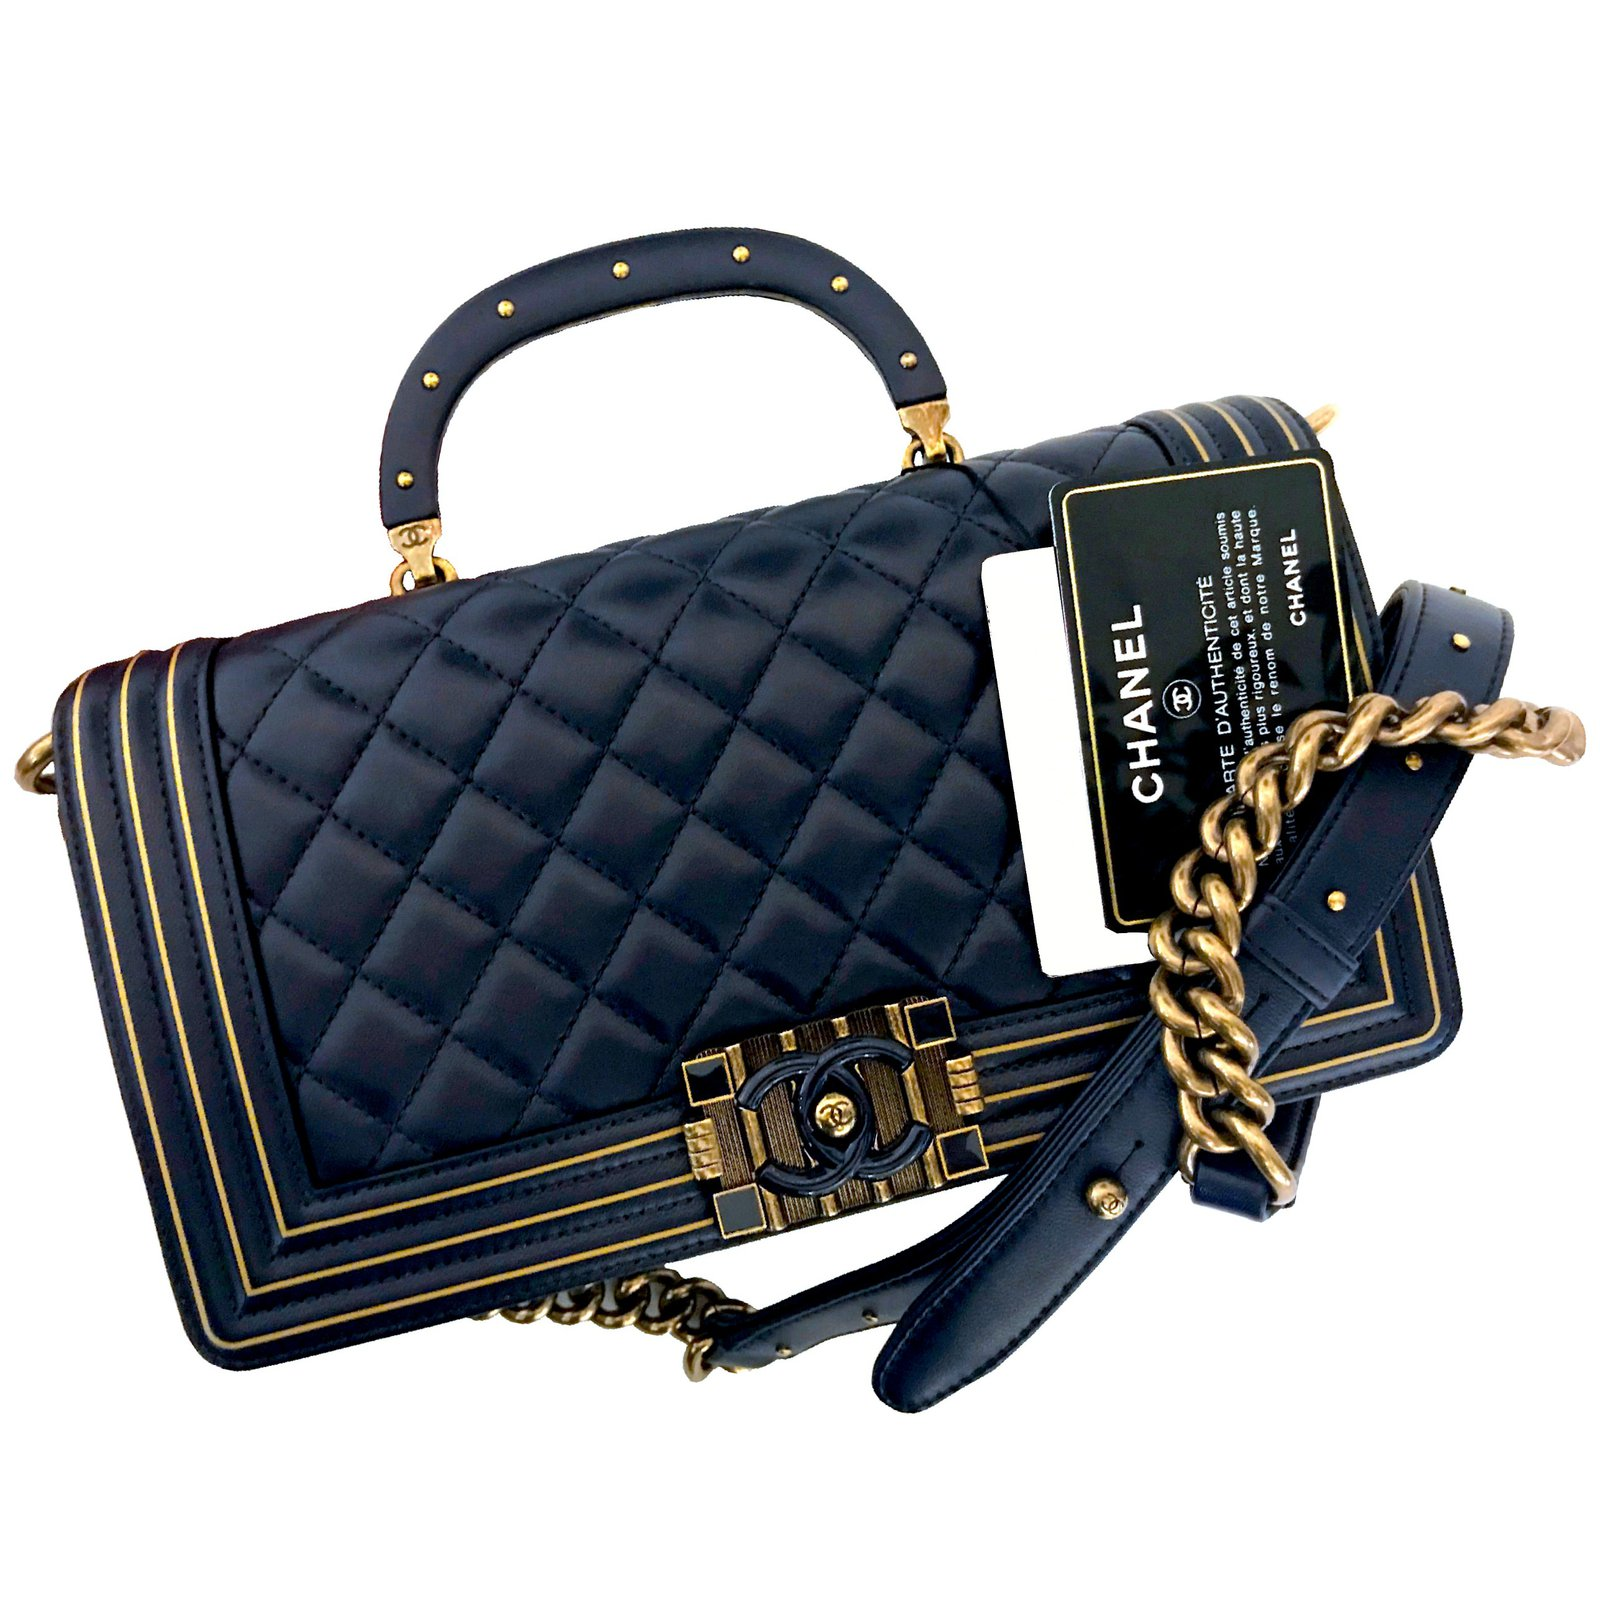 19cc990fab76 Chanel Chanel Navy Blue Gold Lambskin and Resin BOY STUDDED HANDLE BAG from  Chanel Metiers D